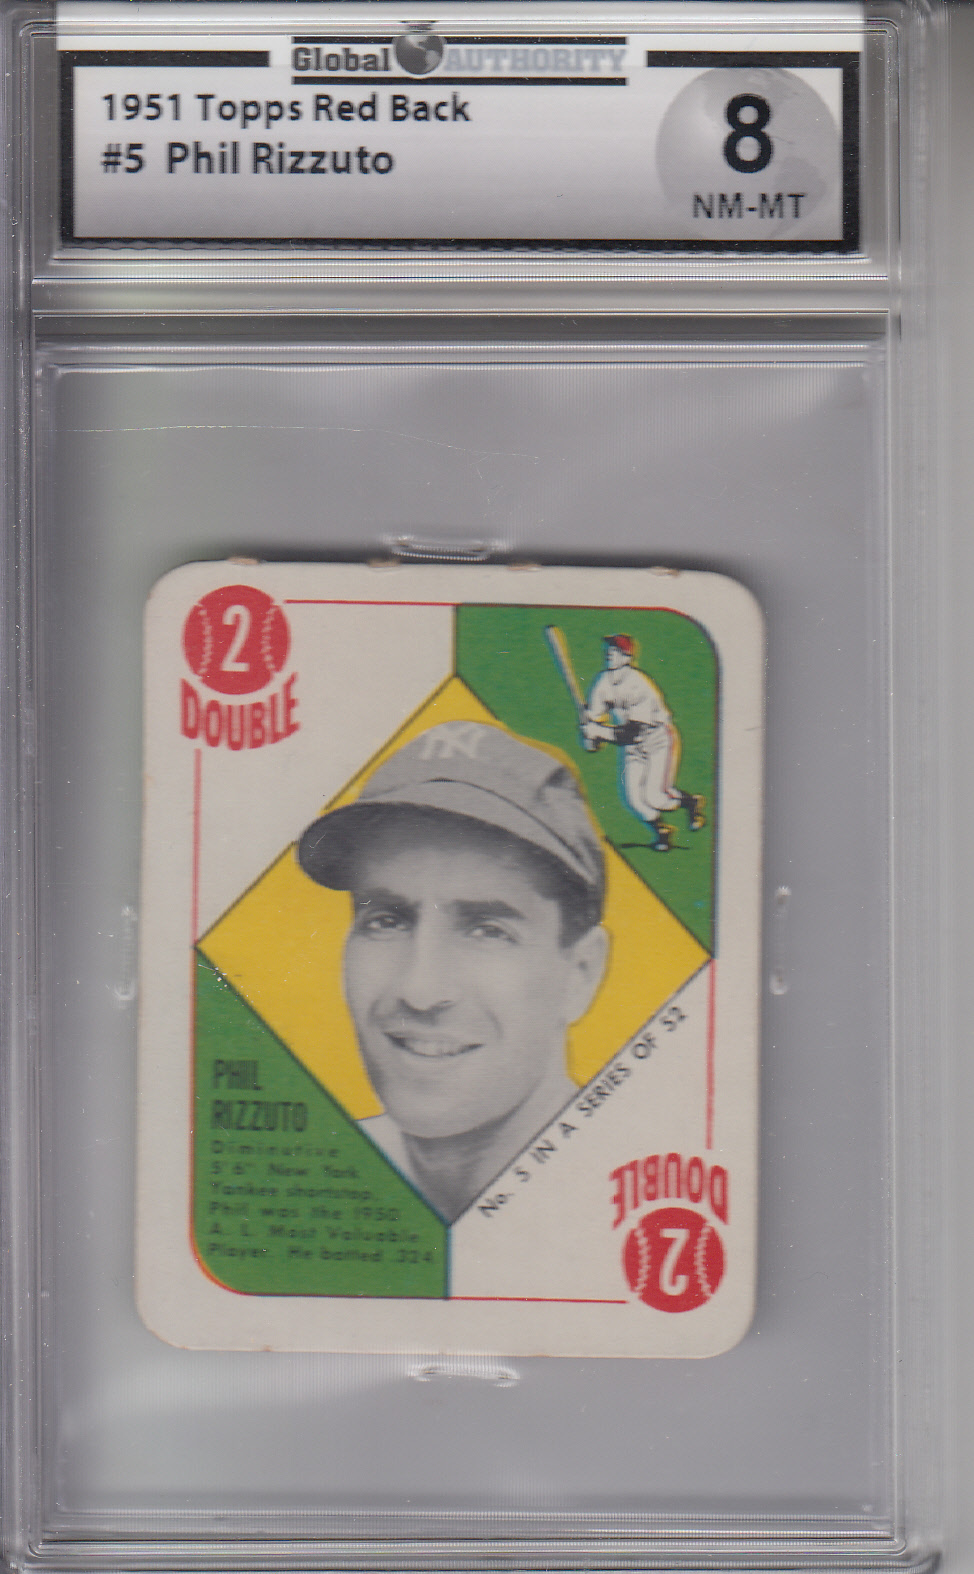 1951 Topps Red Back #5 Phil Rizzuto YANKEES GAI 8 NM-MT Z19228